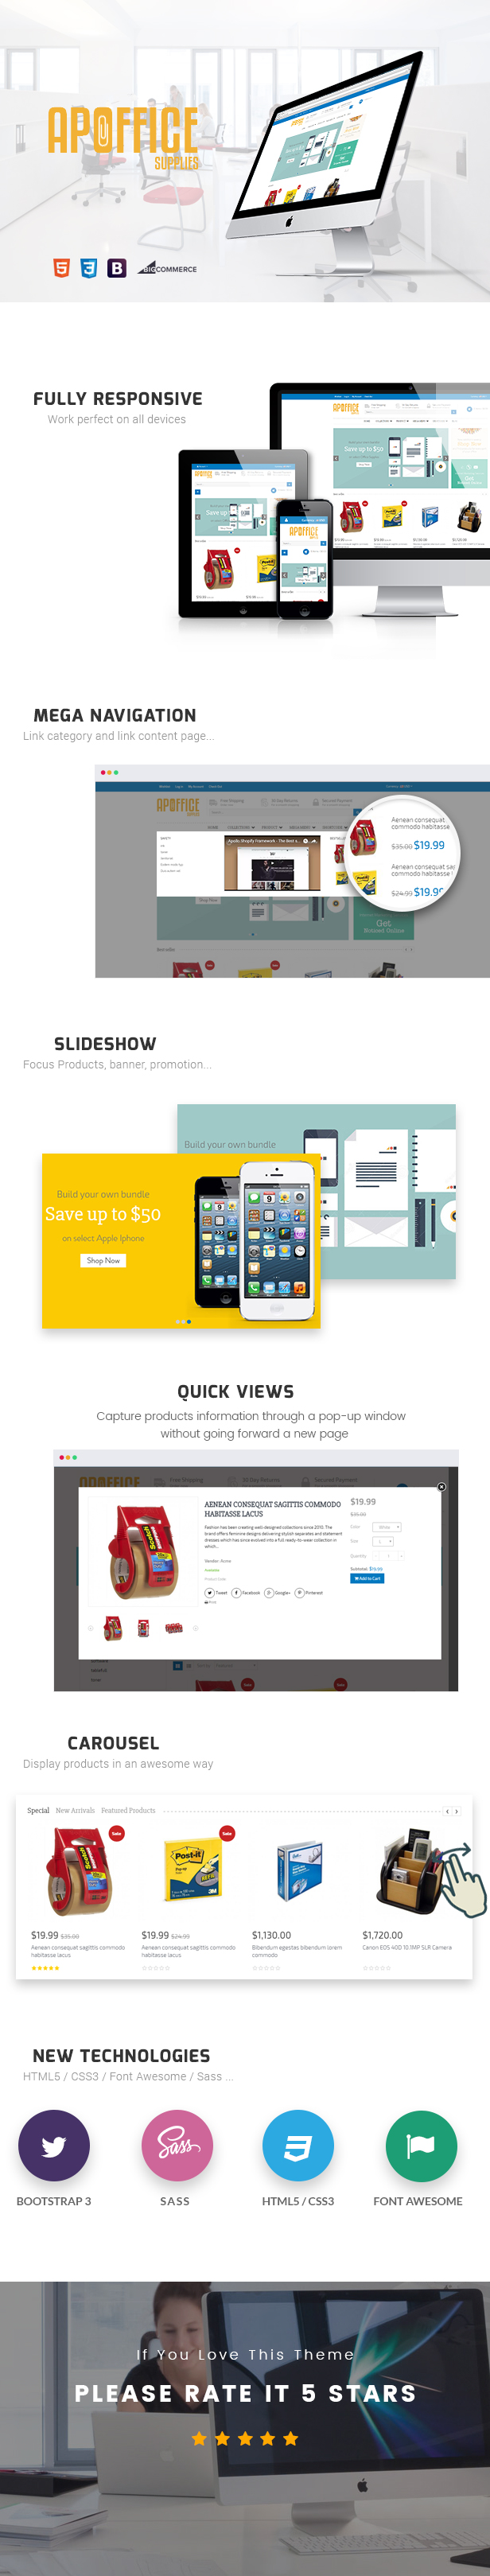 Ap Office BigCommerce Theme